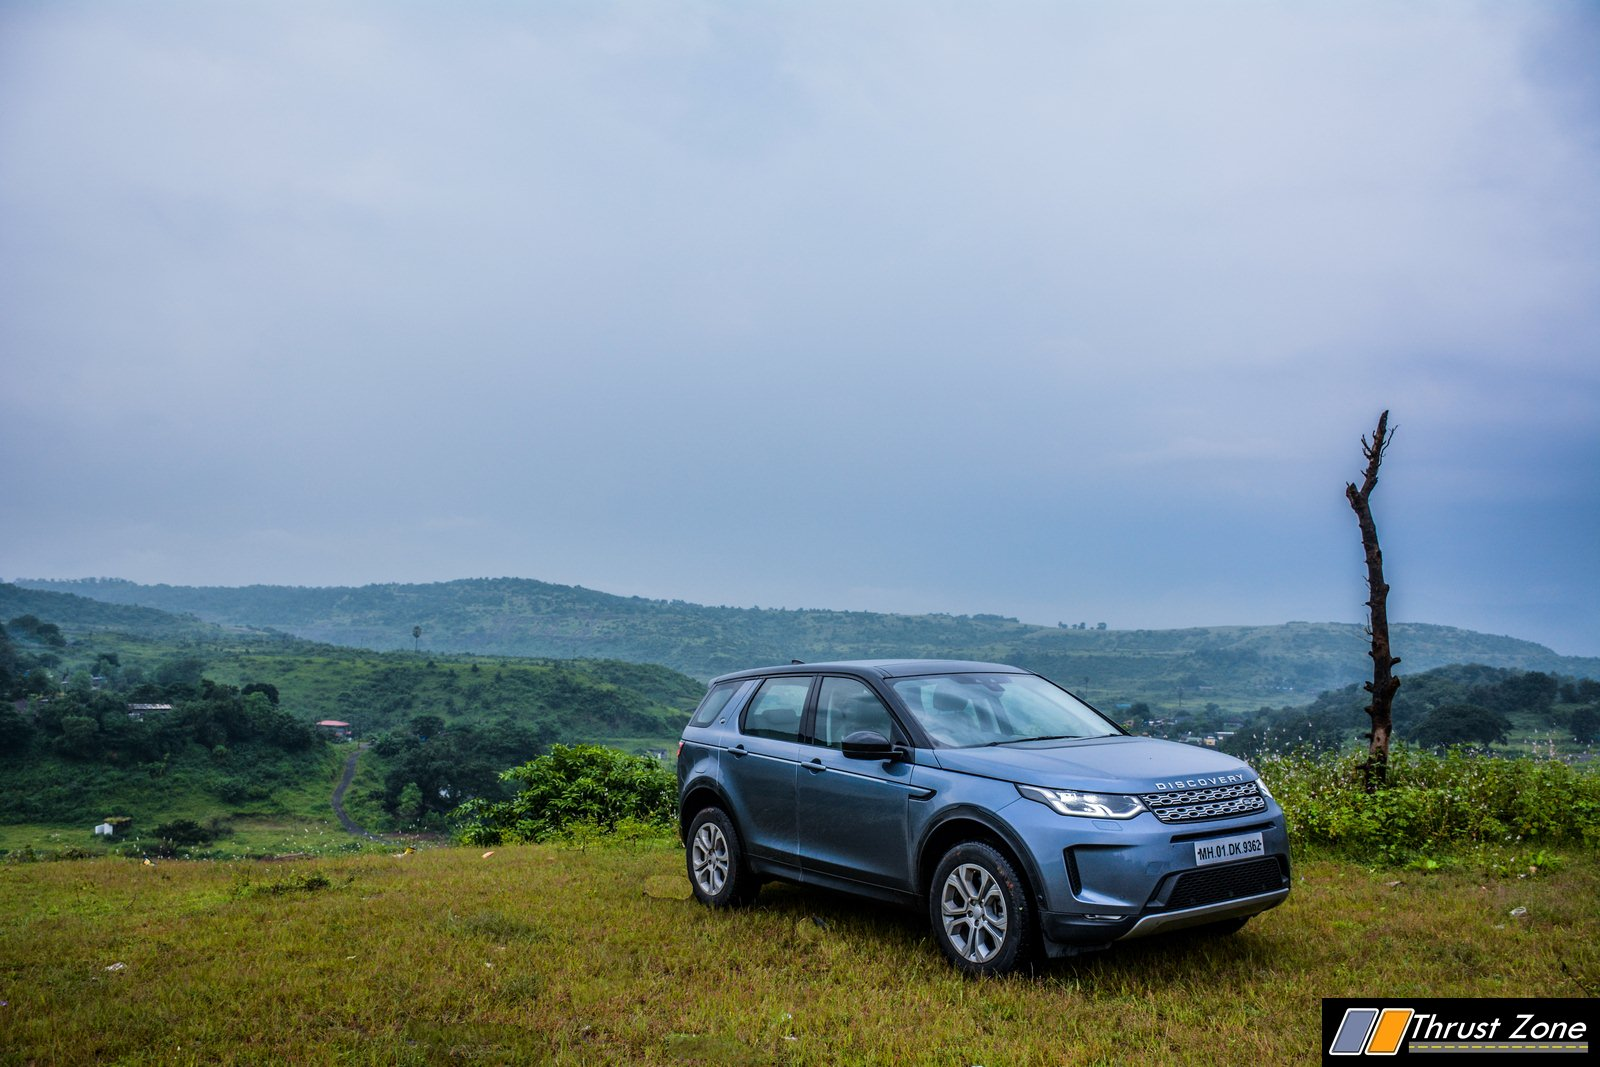 2020-Land-Rover-Discovery-Diesel-India-Review-1